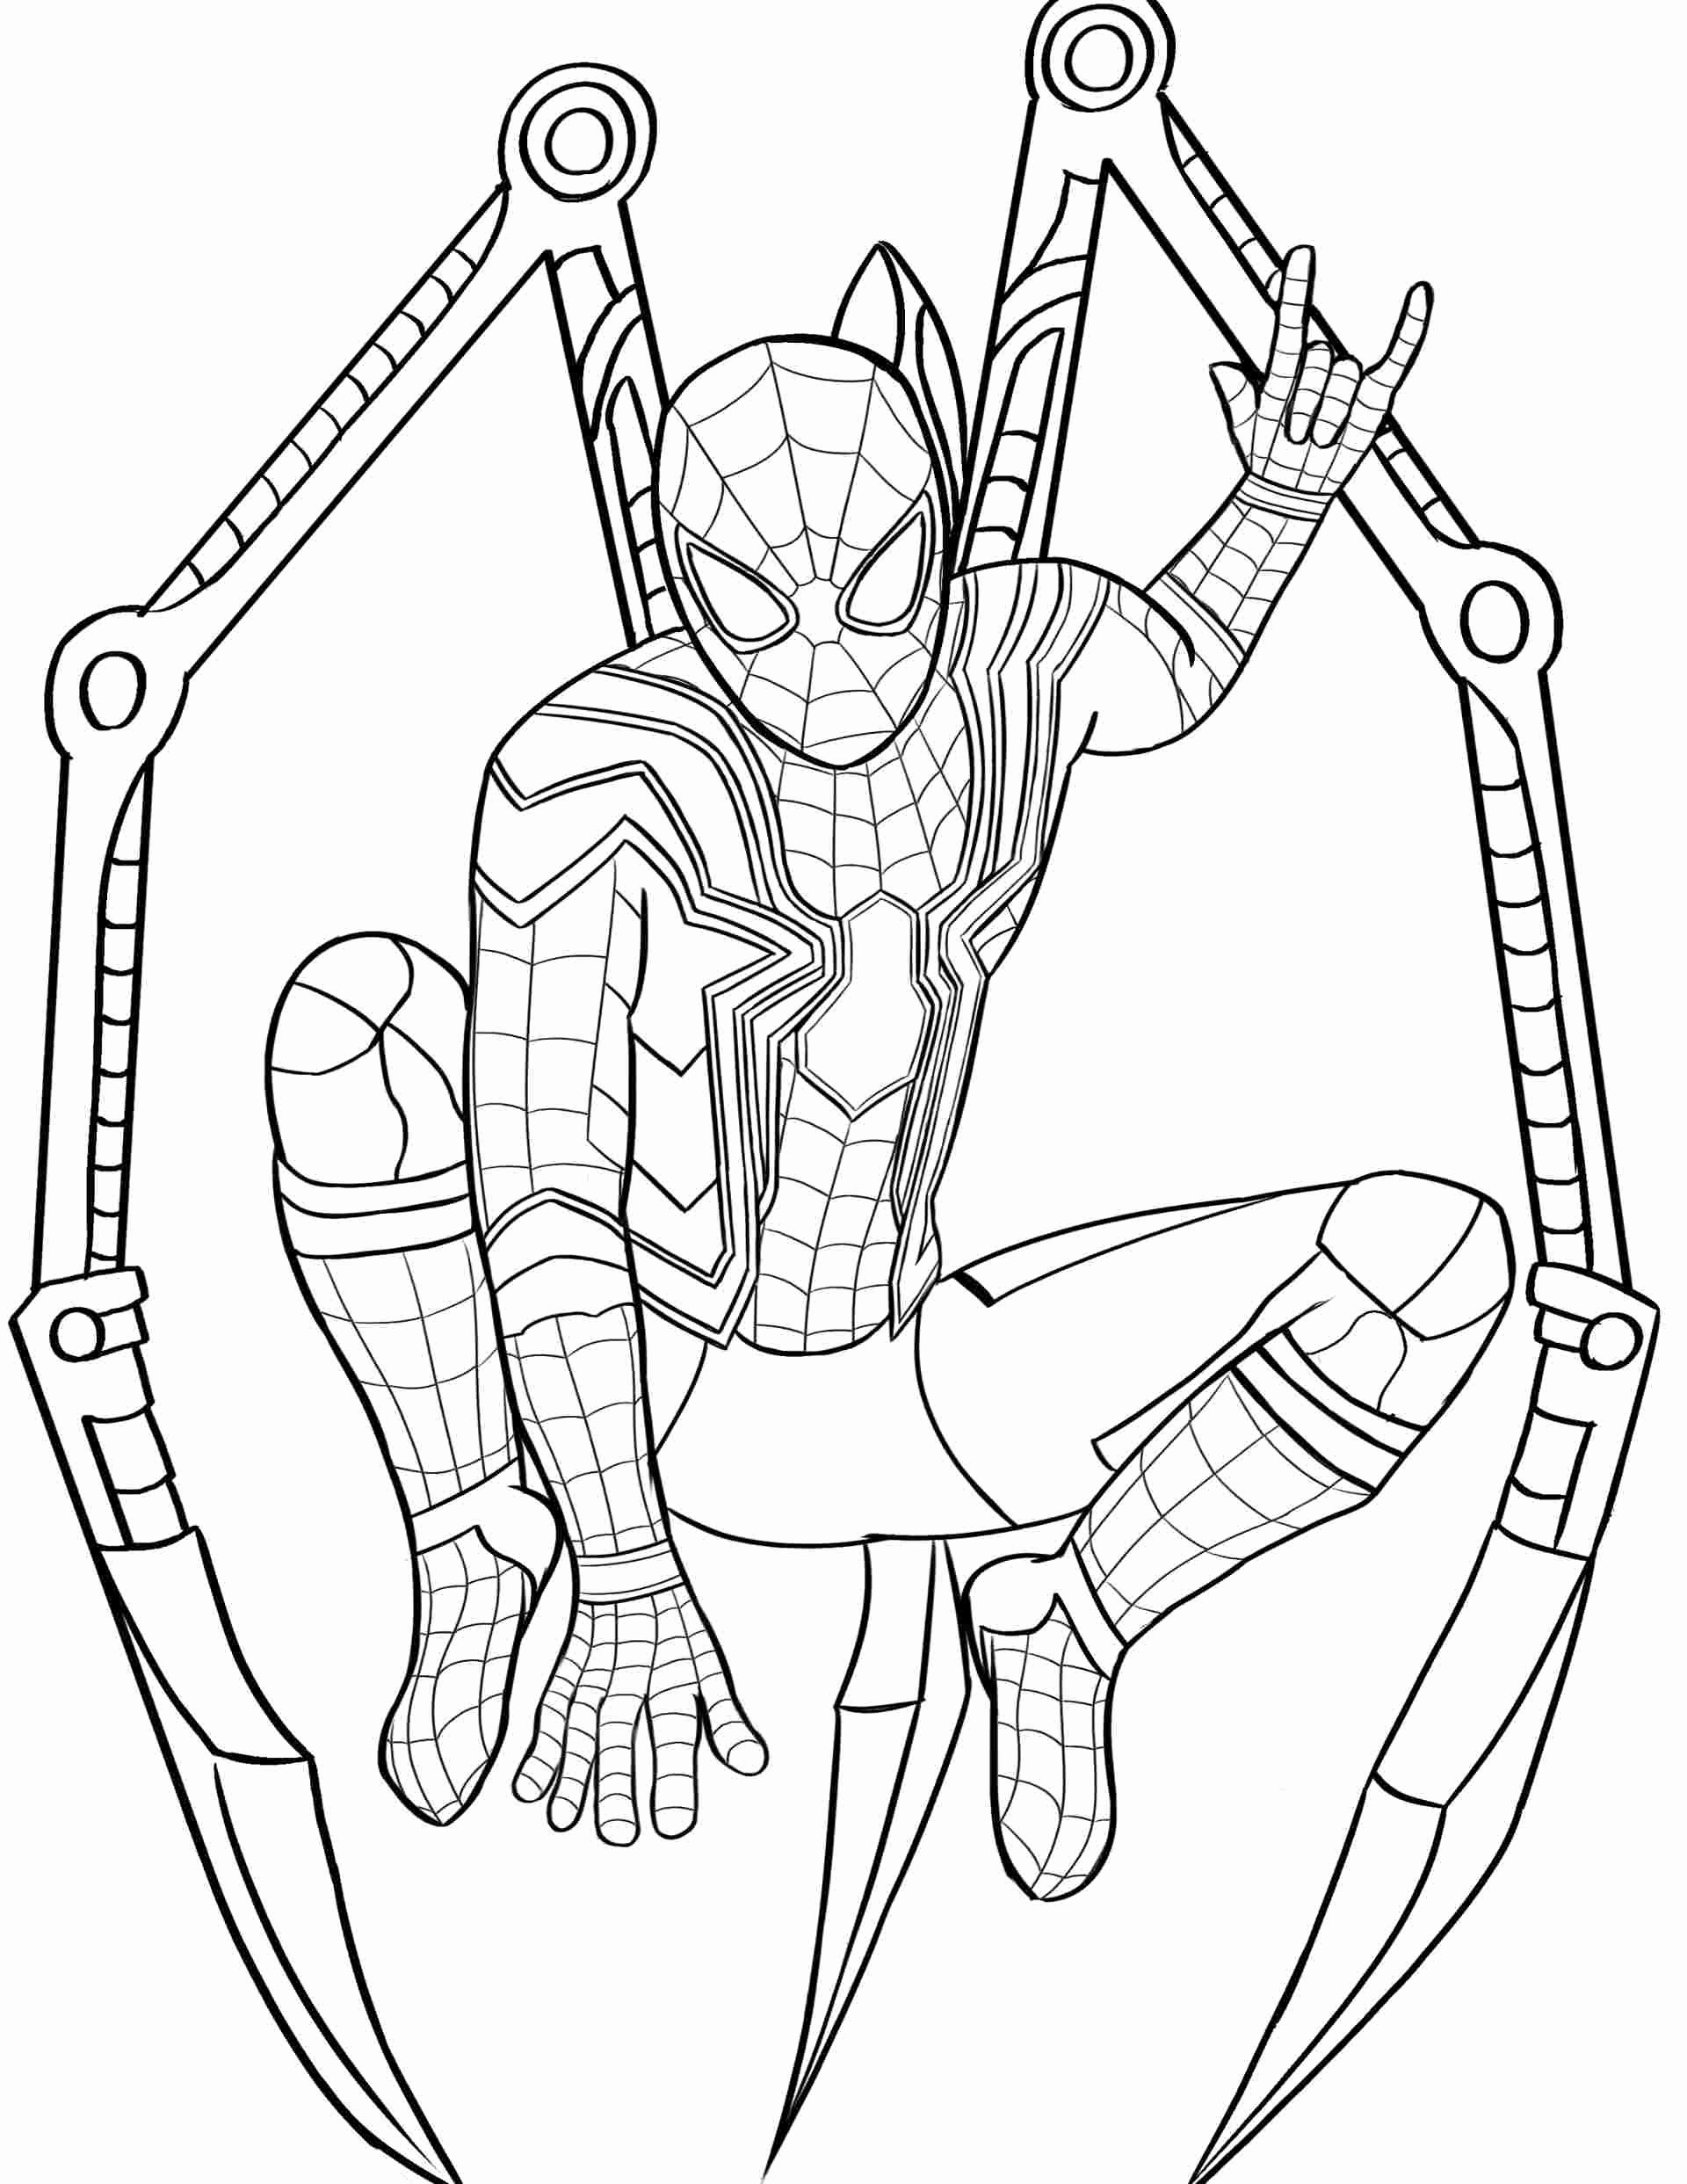 Avengers Miles Morales Spiderman Coloring Pages For Kids In 2020 Avengers Coloring Pages Spider Coloring Page Spiderman Coloring